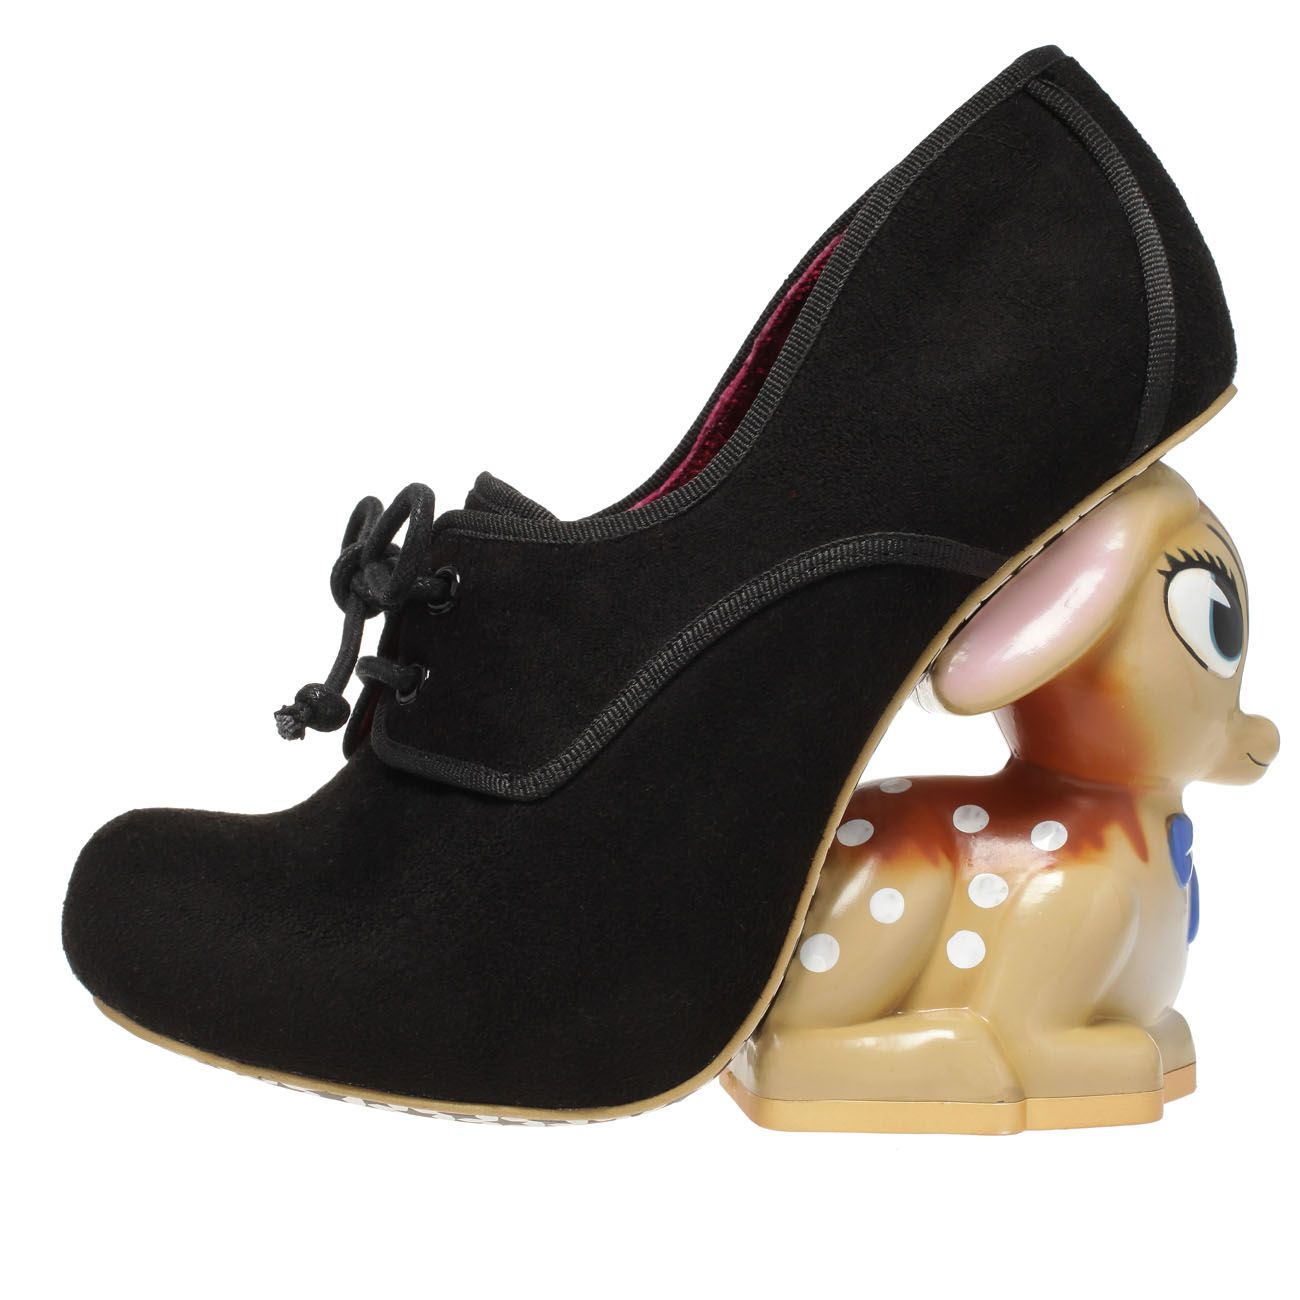 Irregular Choice 'Fawn', black From The Plus Size Fashion Community At www.VintageAndCandy.com